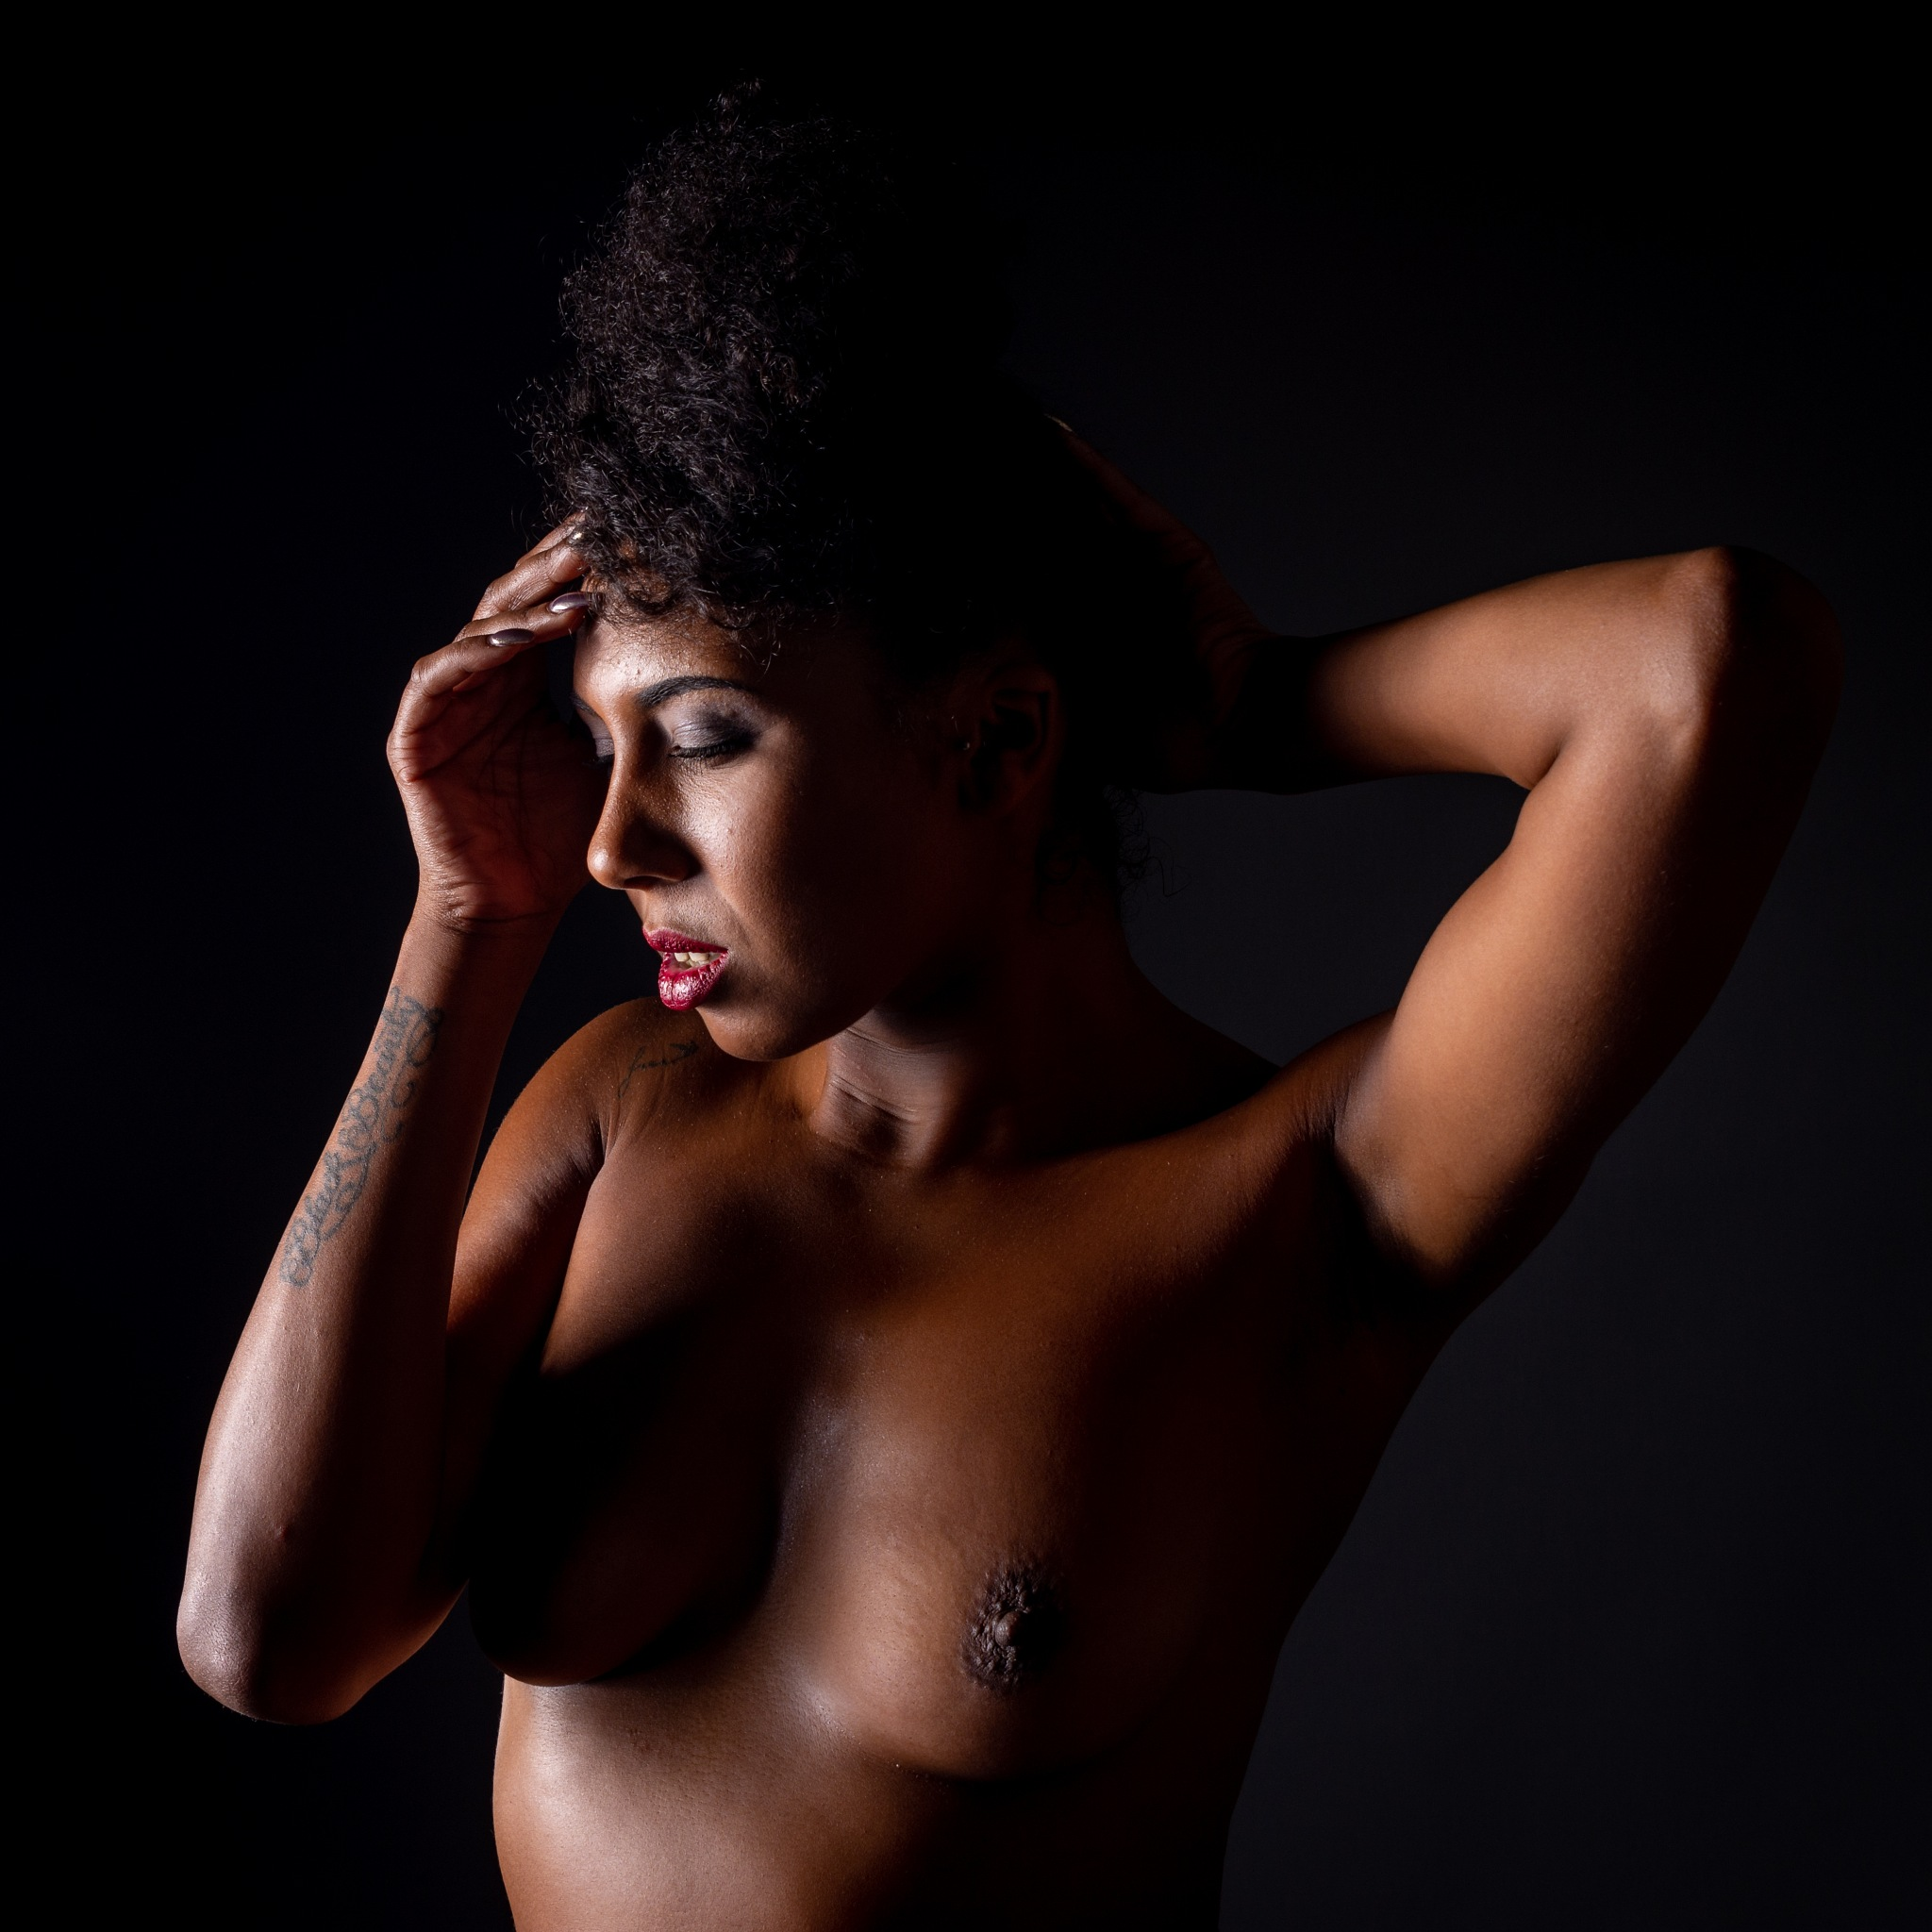 Illy by D Whitehead